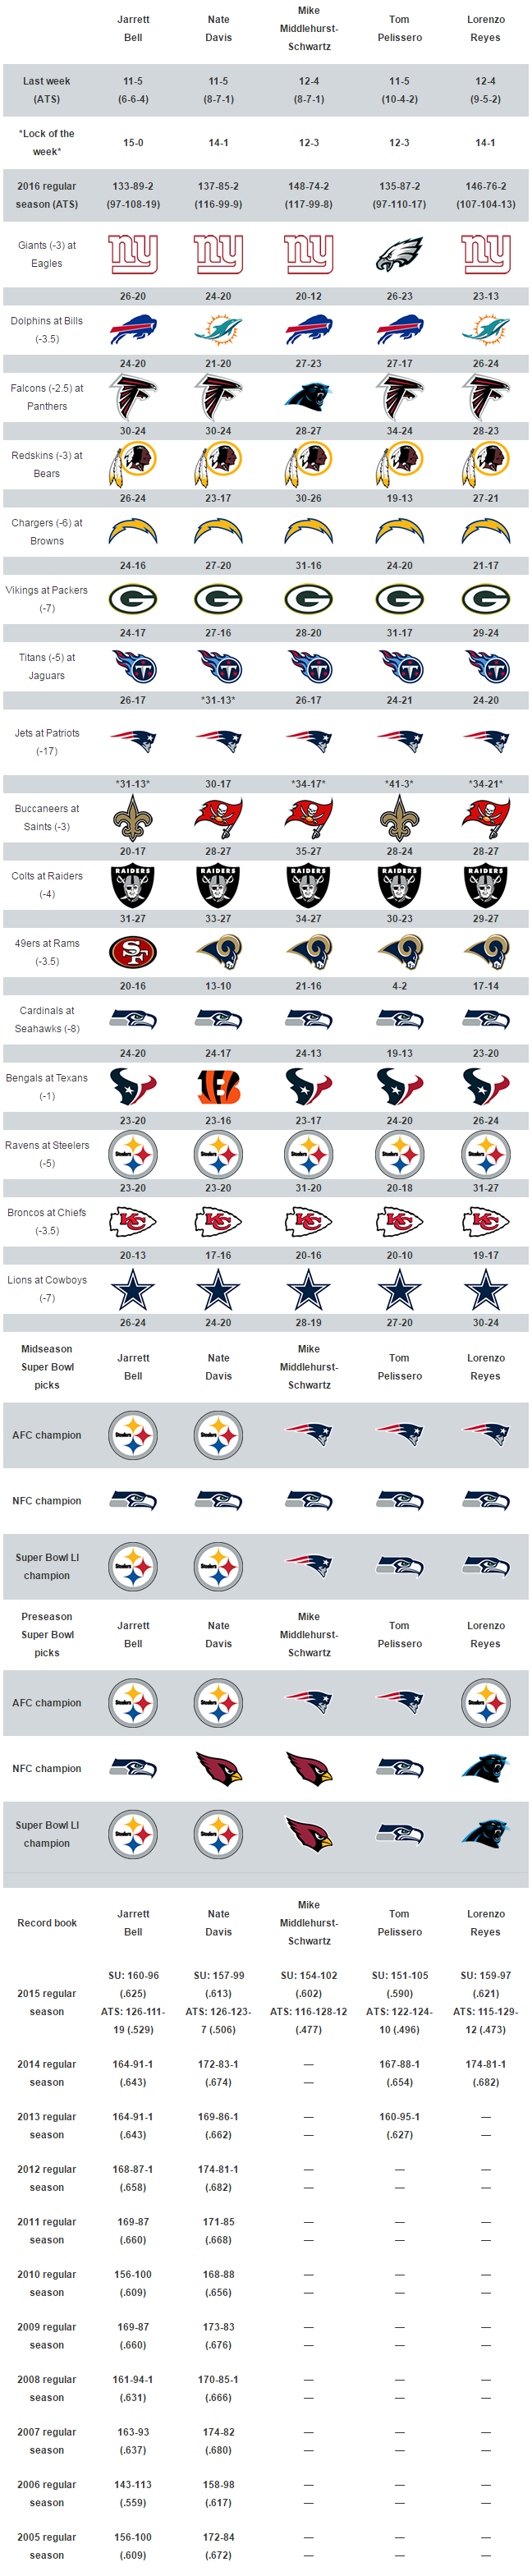 USA TODAY Sports' Week 16 NFL picks